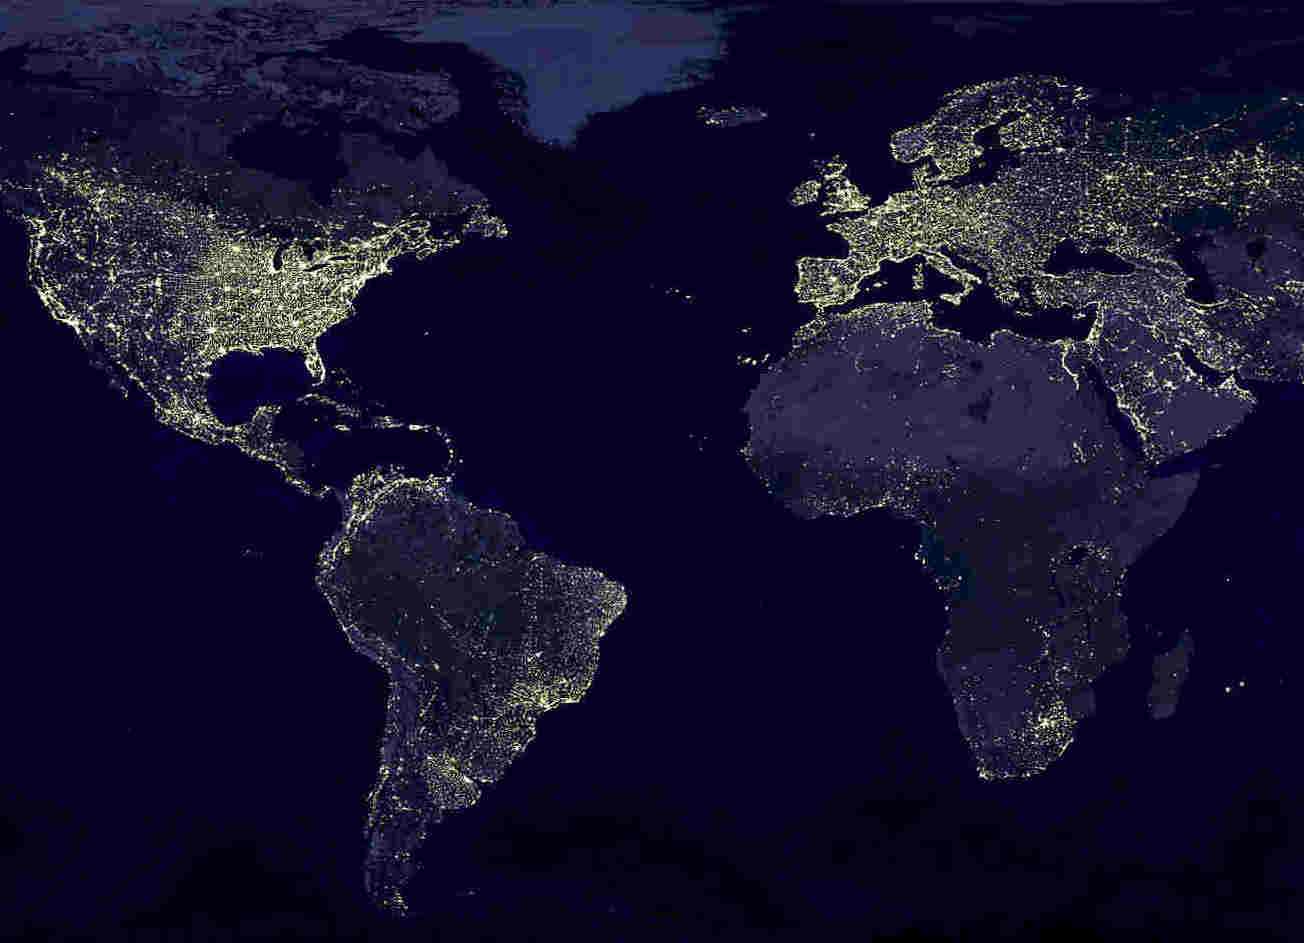 earth map nasa - photo #28